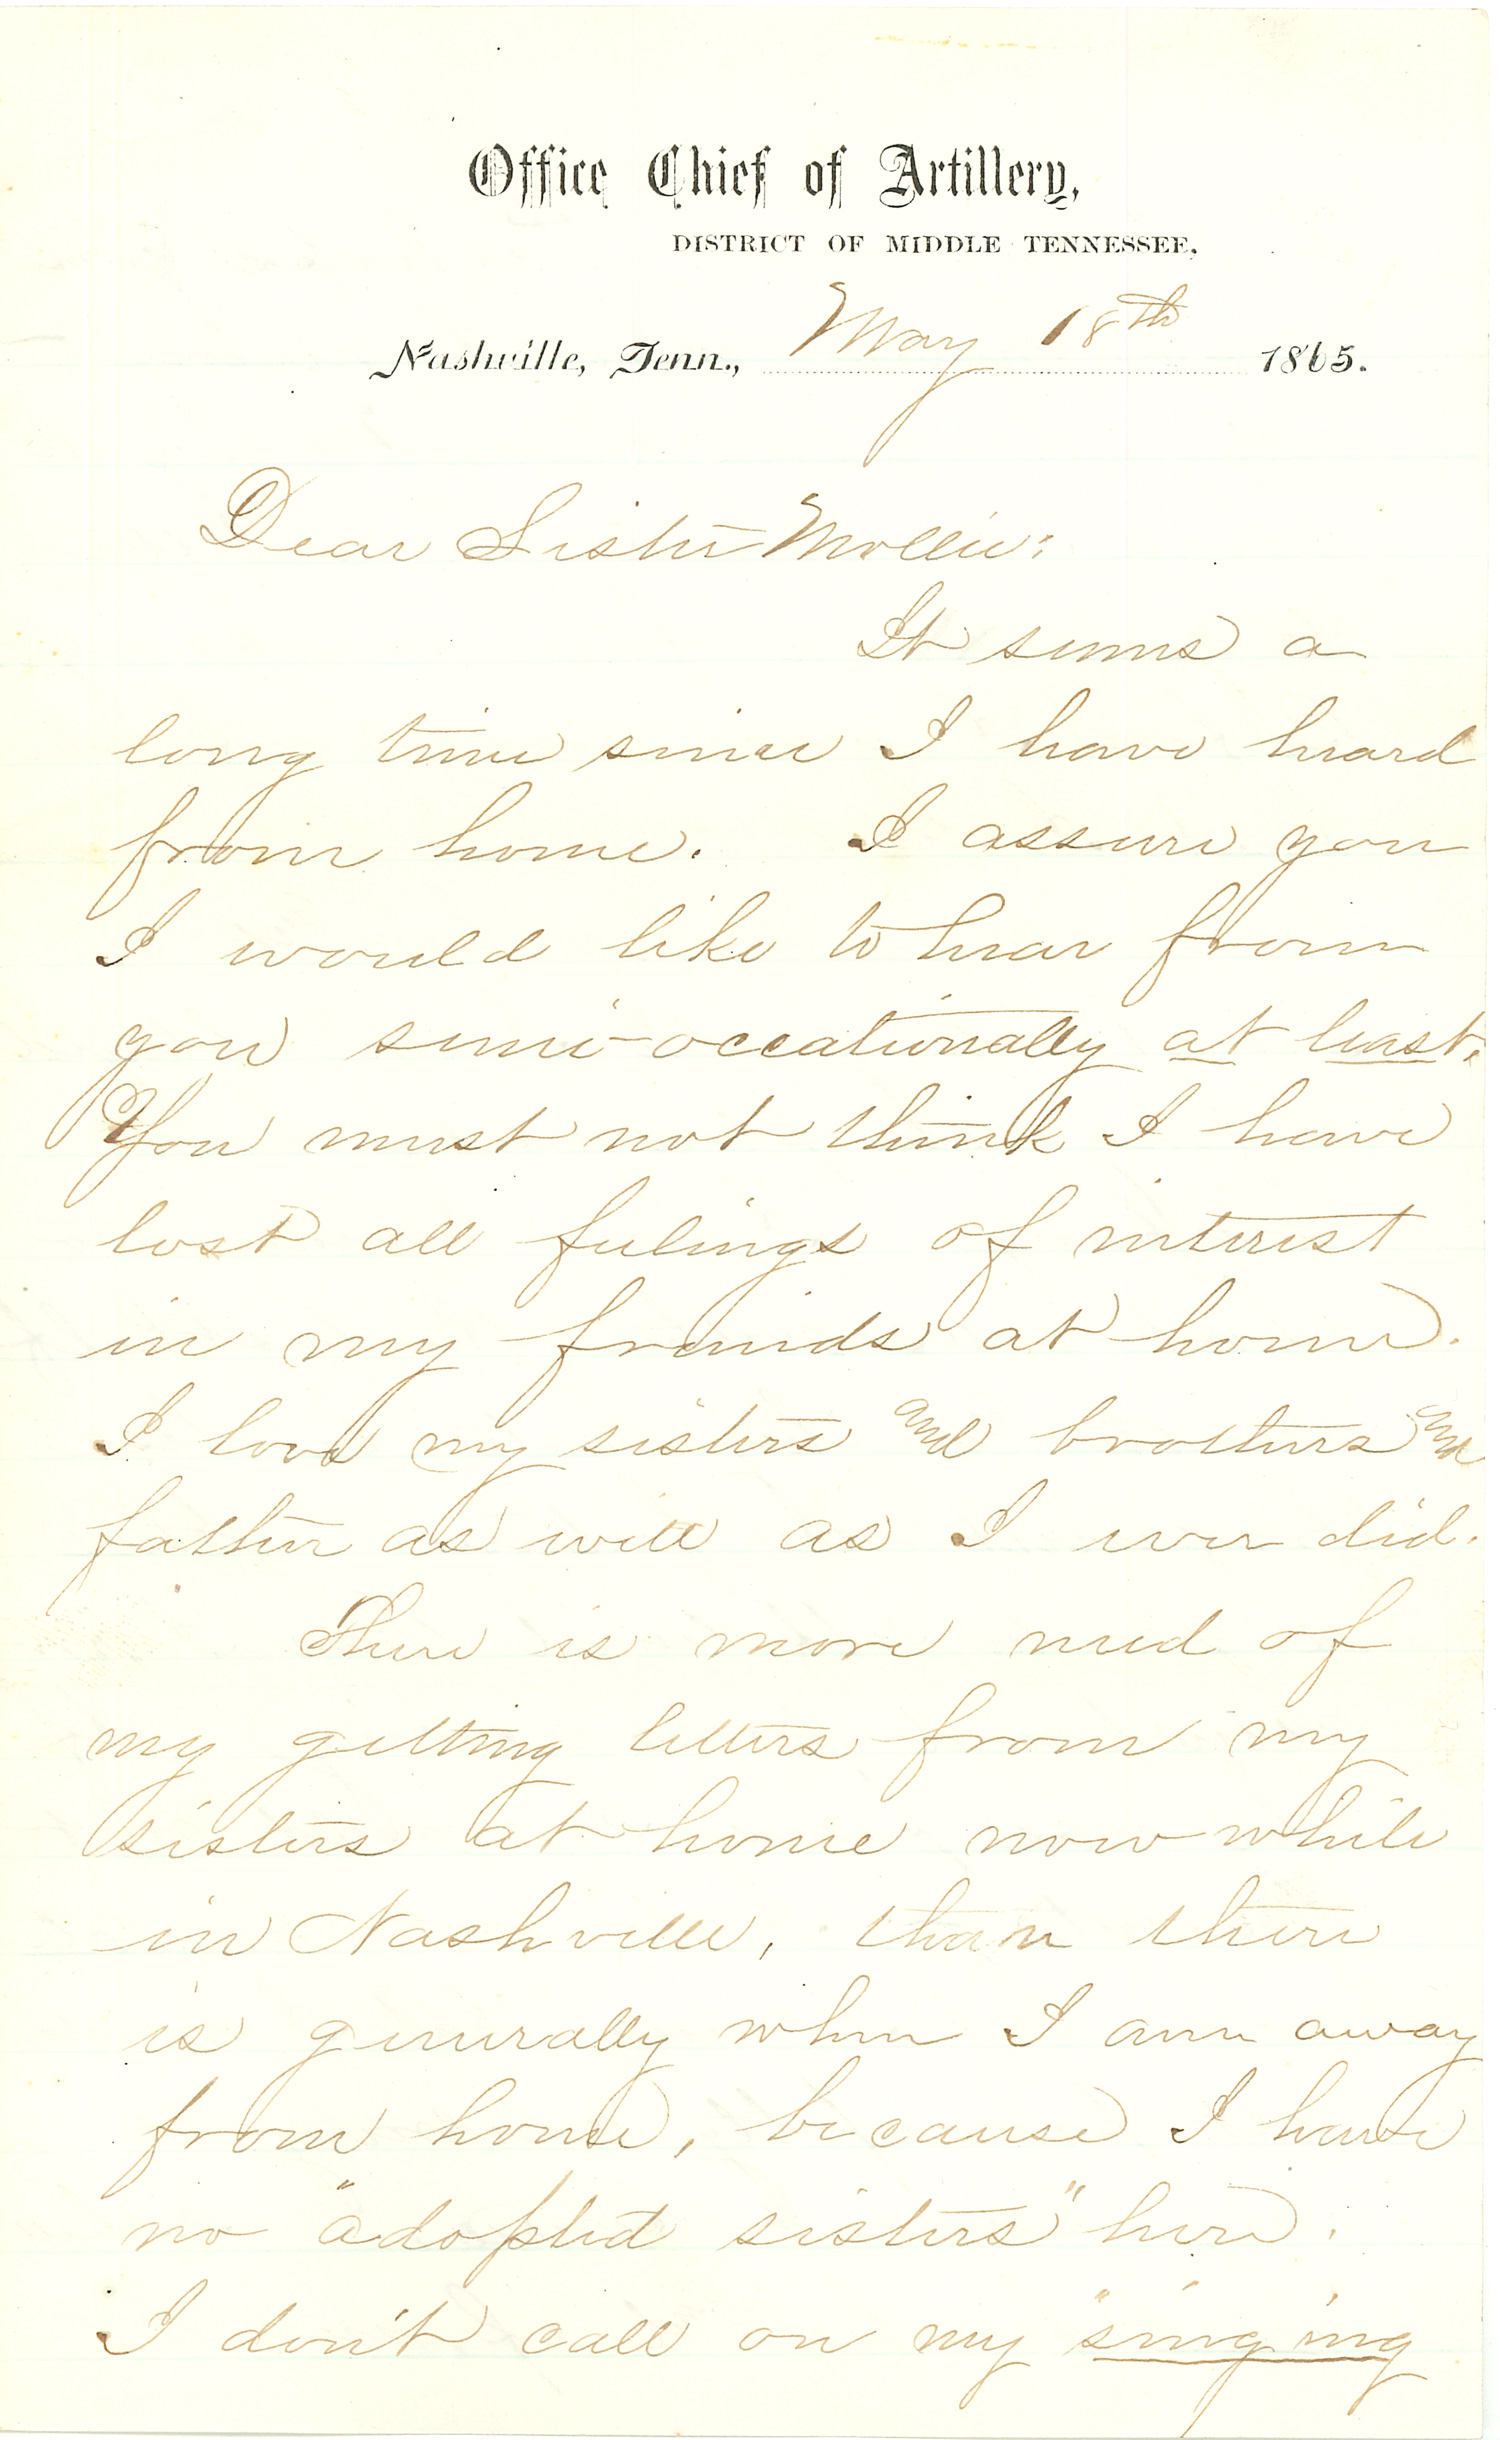 Joseph Culver Letter, May 18, 1865, Page 1